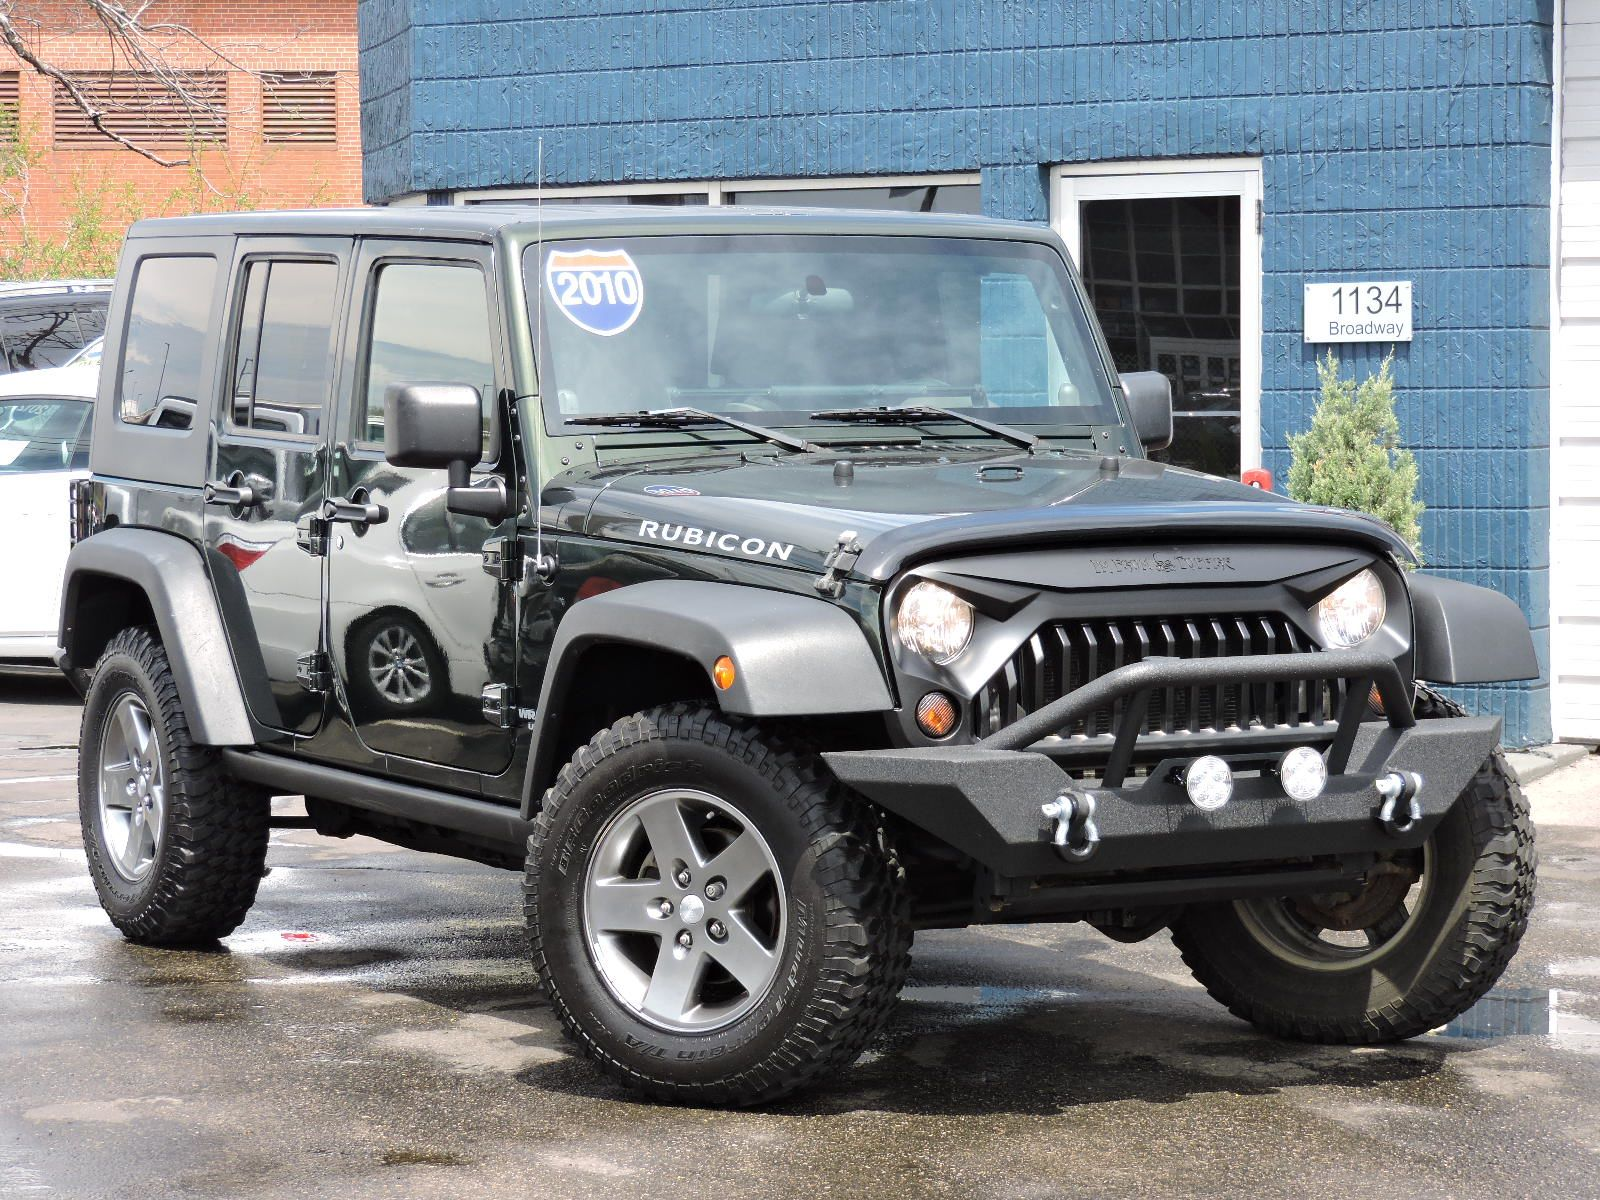 2010 Jeep Wrangler Unlimited 4x4 Rubicon Unlimited